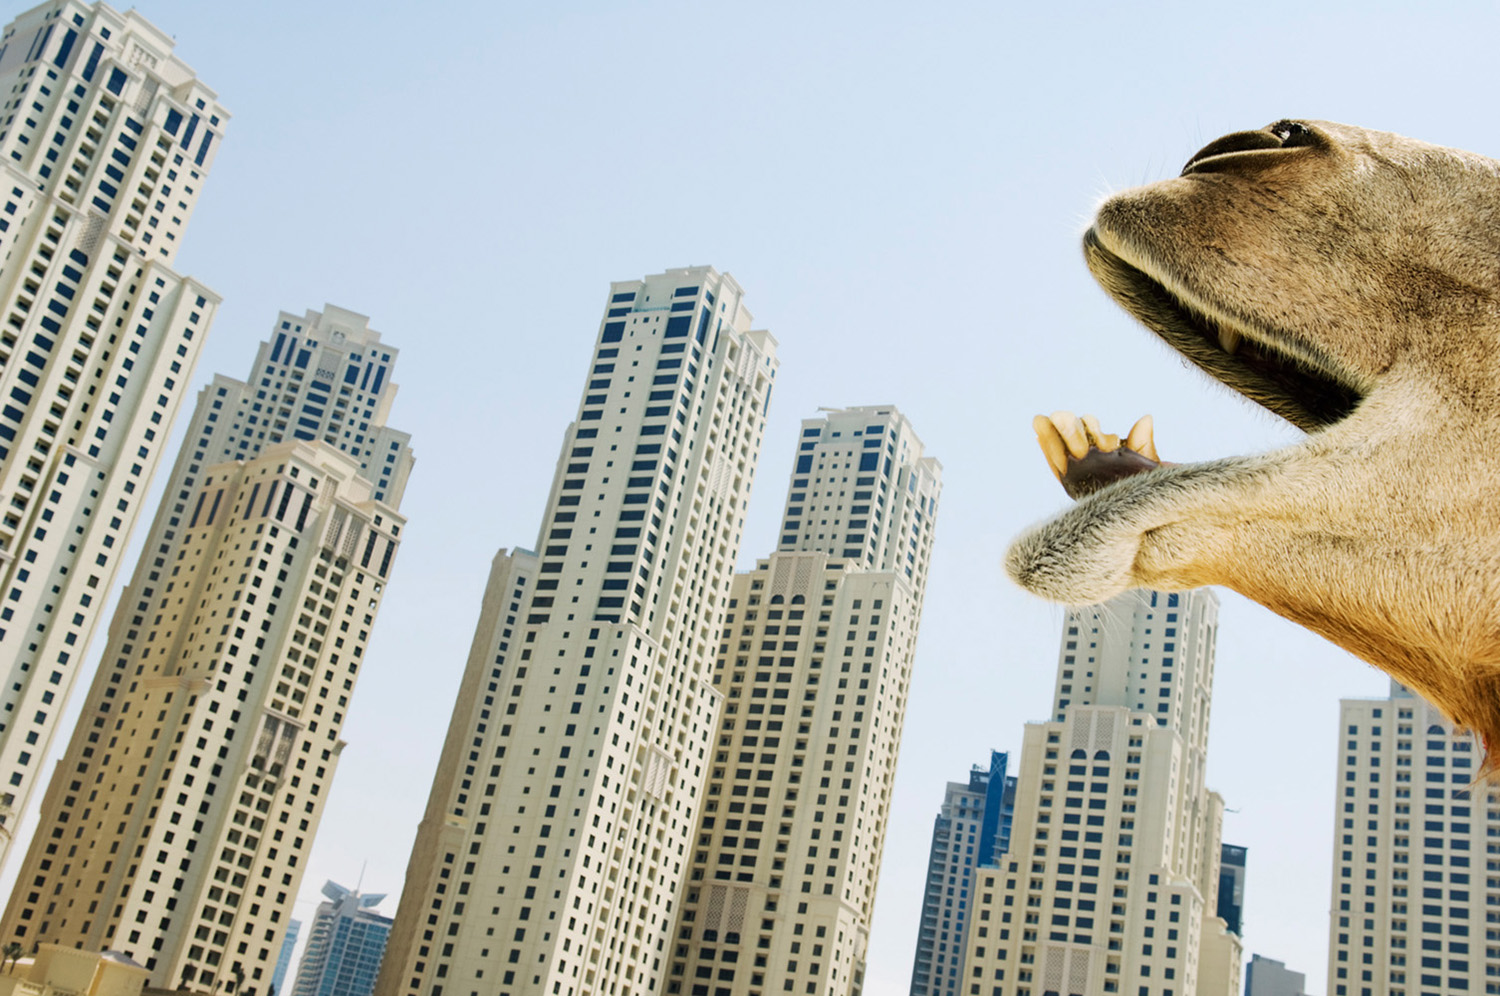 Camel yawning on the beach in Dubai Marina also called the 'new Dubai'. The marina is entirely man-made, being the world's largest, containing over 200 high-rise buildings and some supertall skyscrapers that comprises a area of 4.9 million m2.